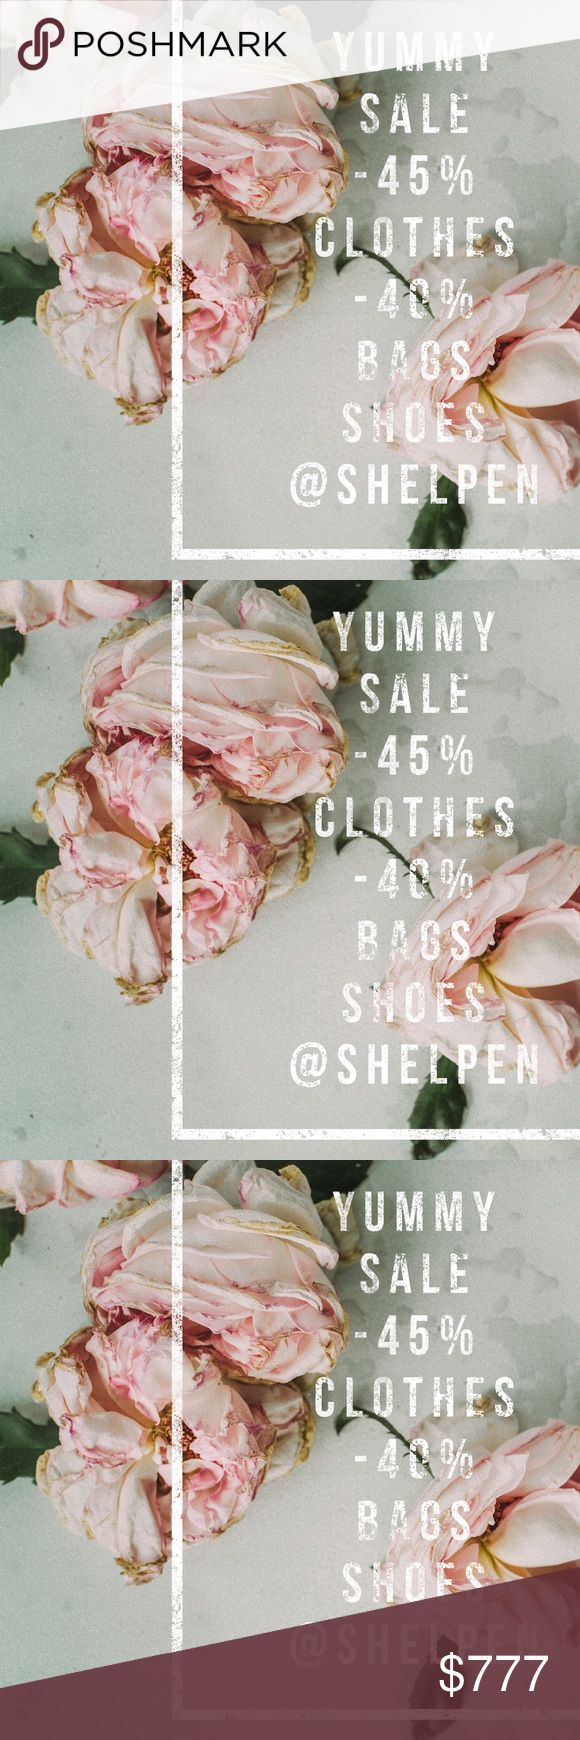 🌸🌺🥀Yummy sale. -45% clothing. -40% shoes/bags. 🌸🌺🥀YUMMY SALE..  45% Off Clothes.40% Shoes.40% Purses ~~LIMITED TIME. Discount will not apply to $5, $3 or Free items.  ~~Please look at all photos and read descriptions carefully before you purchase.  ~~Items may not be returned.  ~~Reposh.   ~~Press like on any item to learn about future price breaks.  <<<< I will have to create your listing.>>> ~~Some items may receive shipping discounts. ~~No trades. No PayPal. No lowball offers…